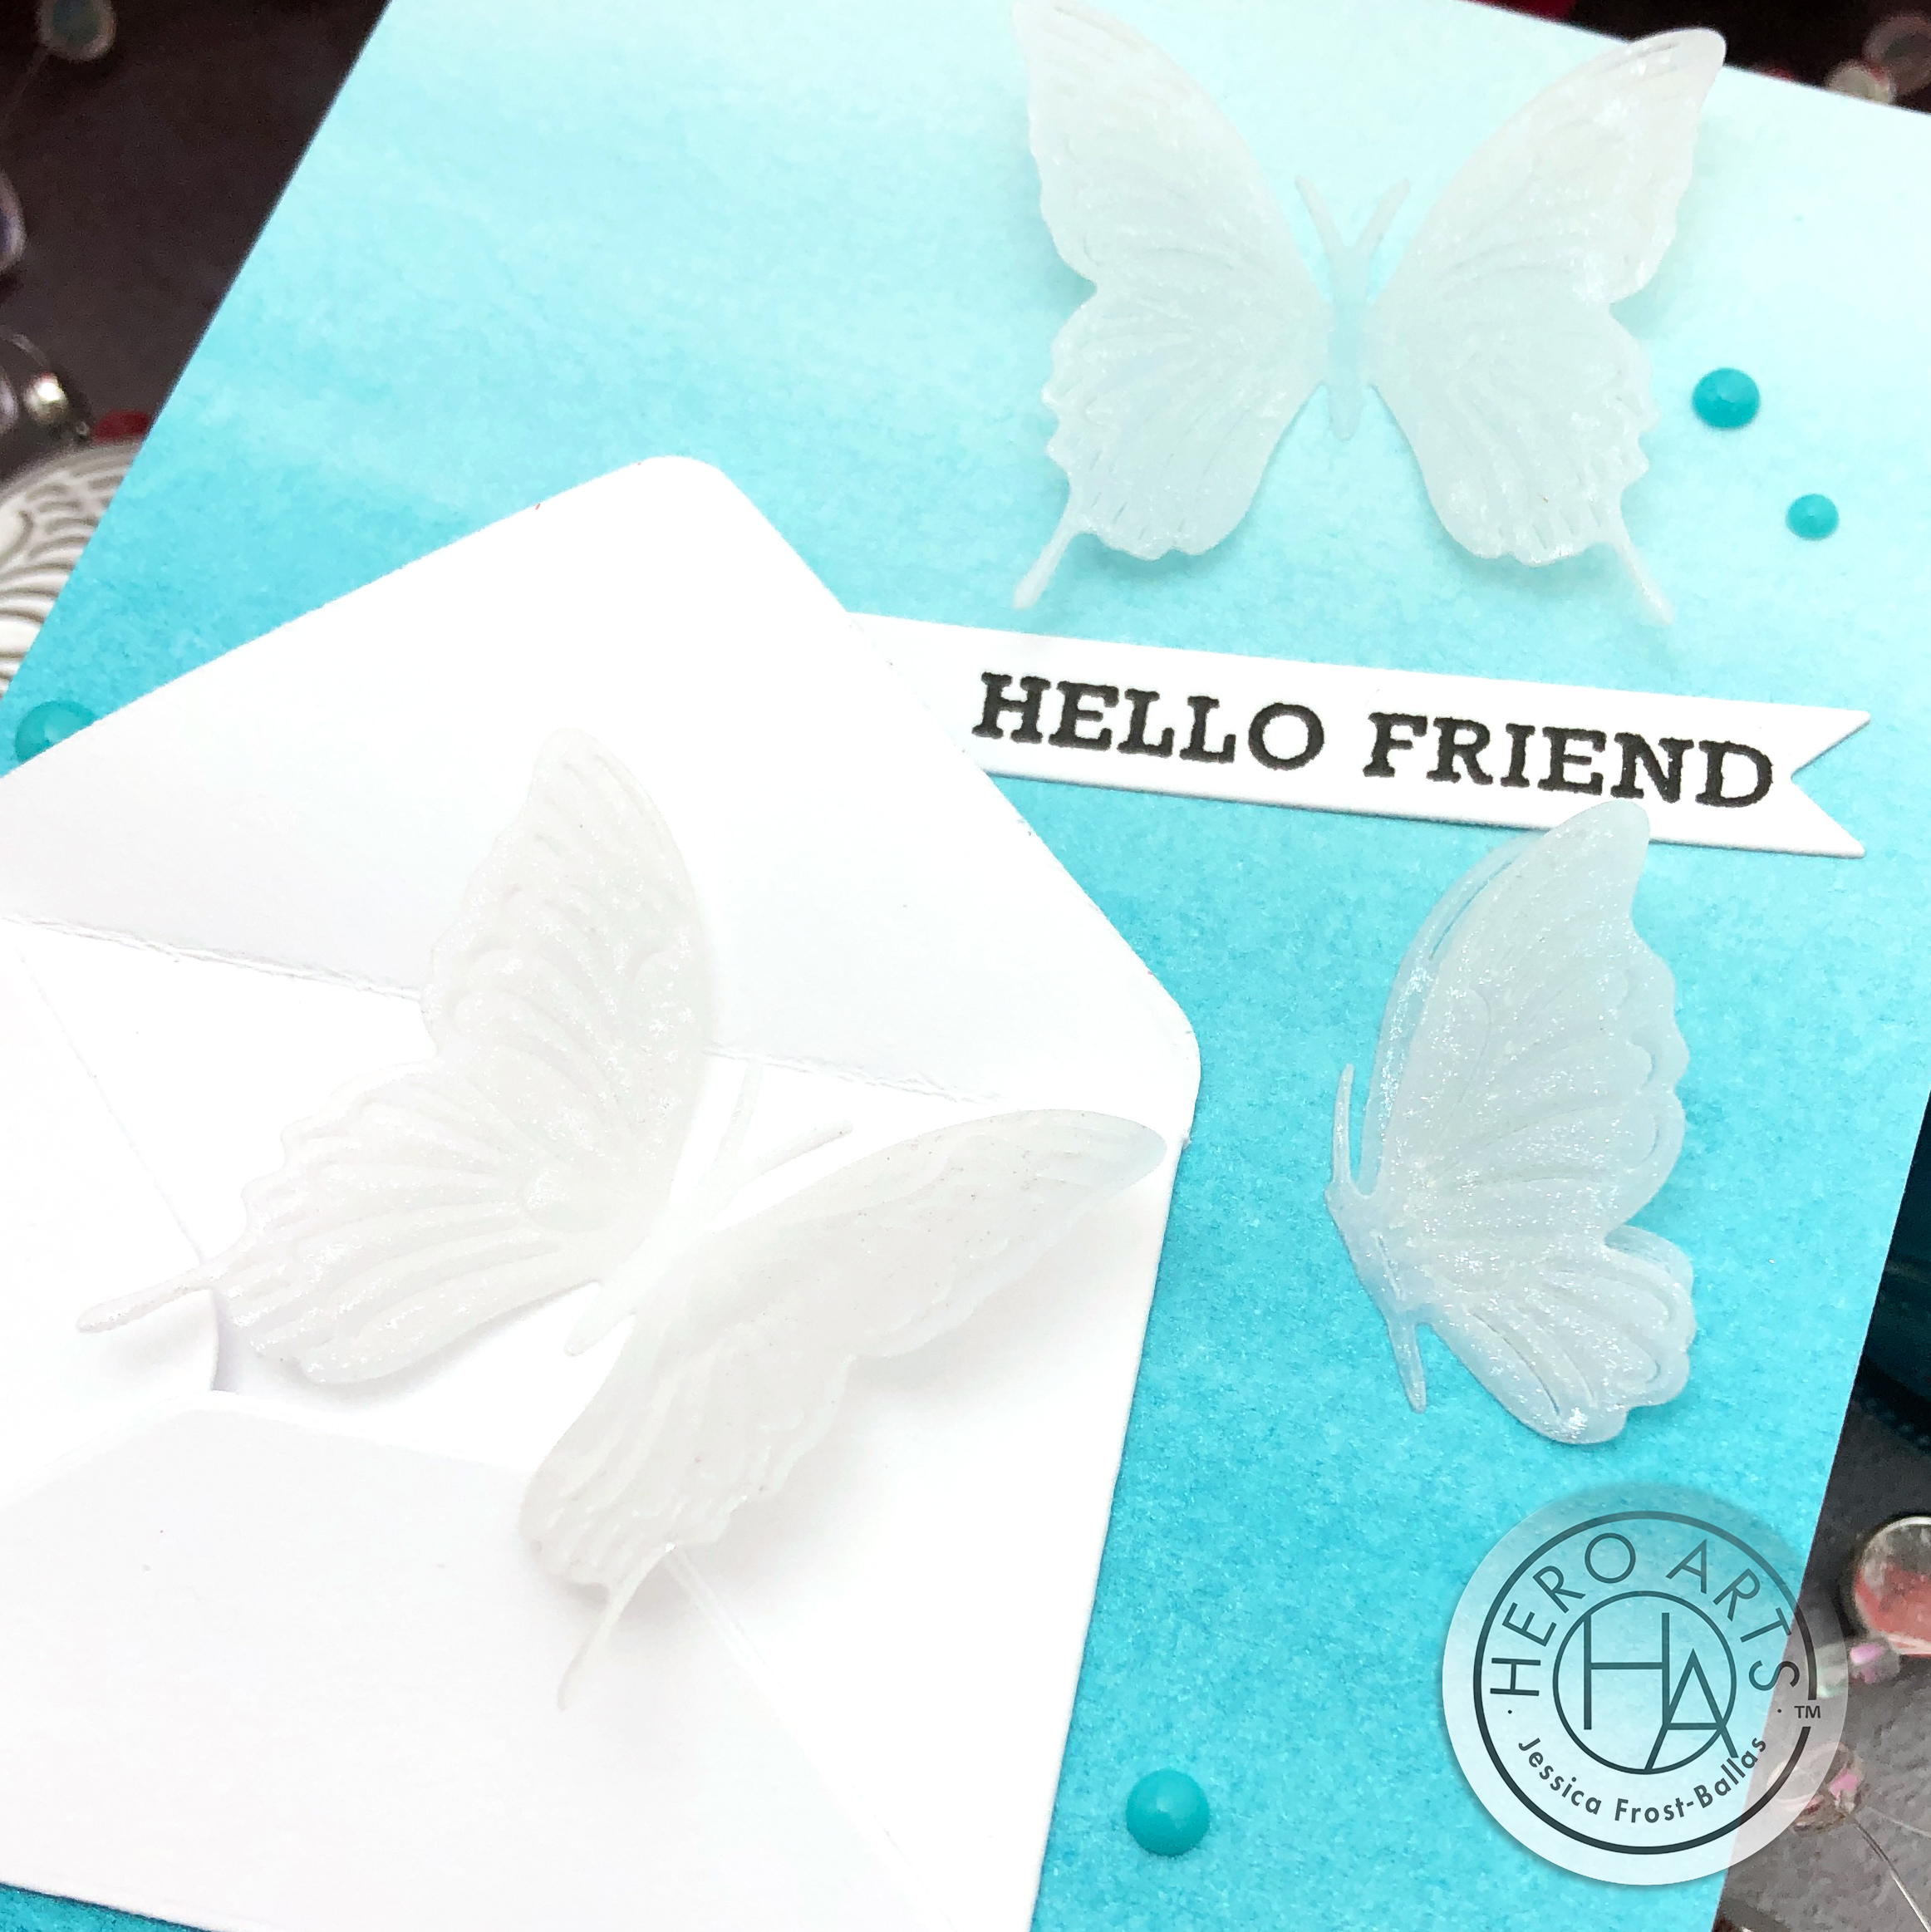 Hello Friend by Jessica Frost-Ballas for Hero Arts - January 2020 My Monthly Hero Kit